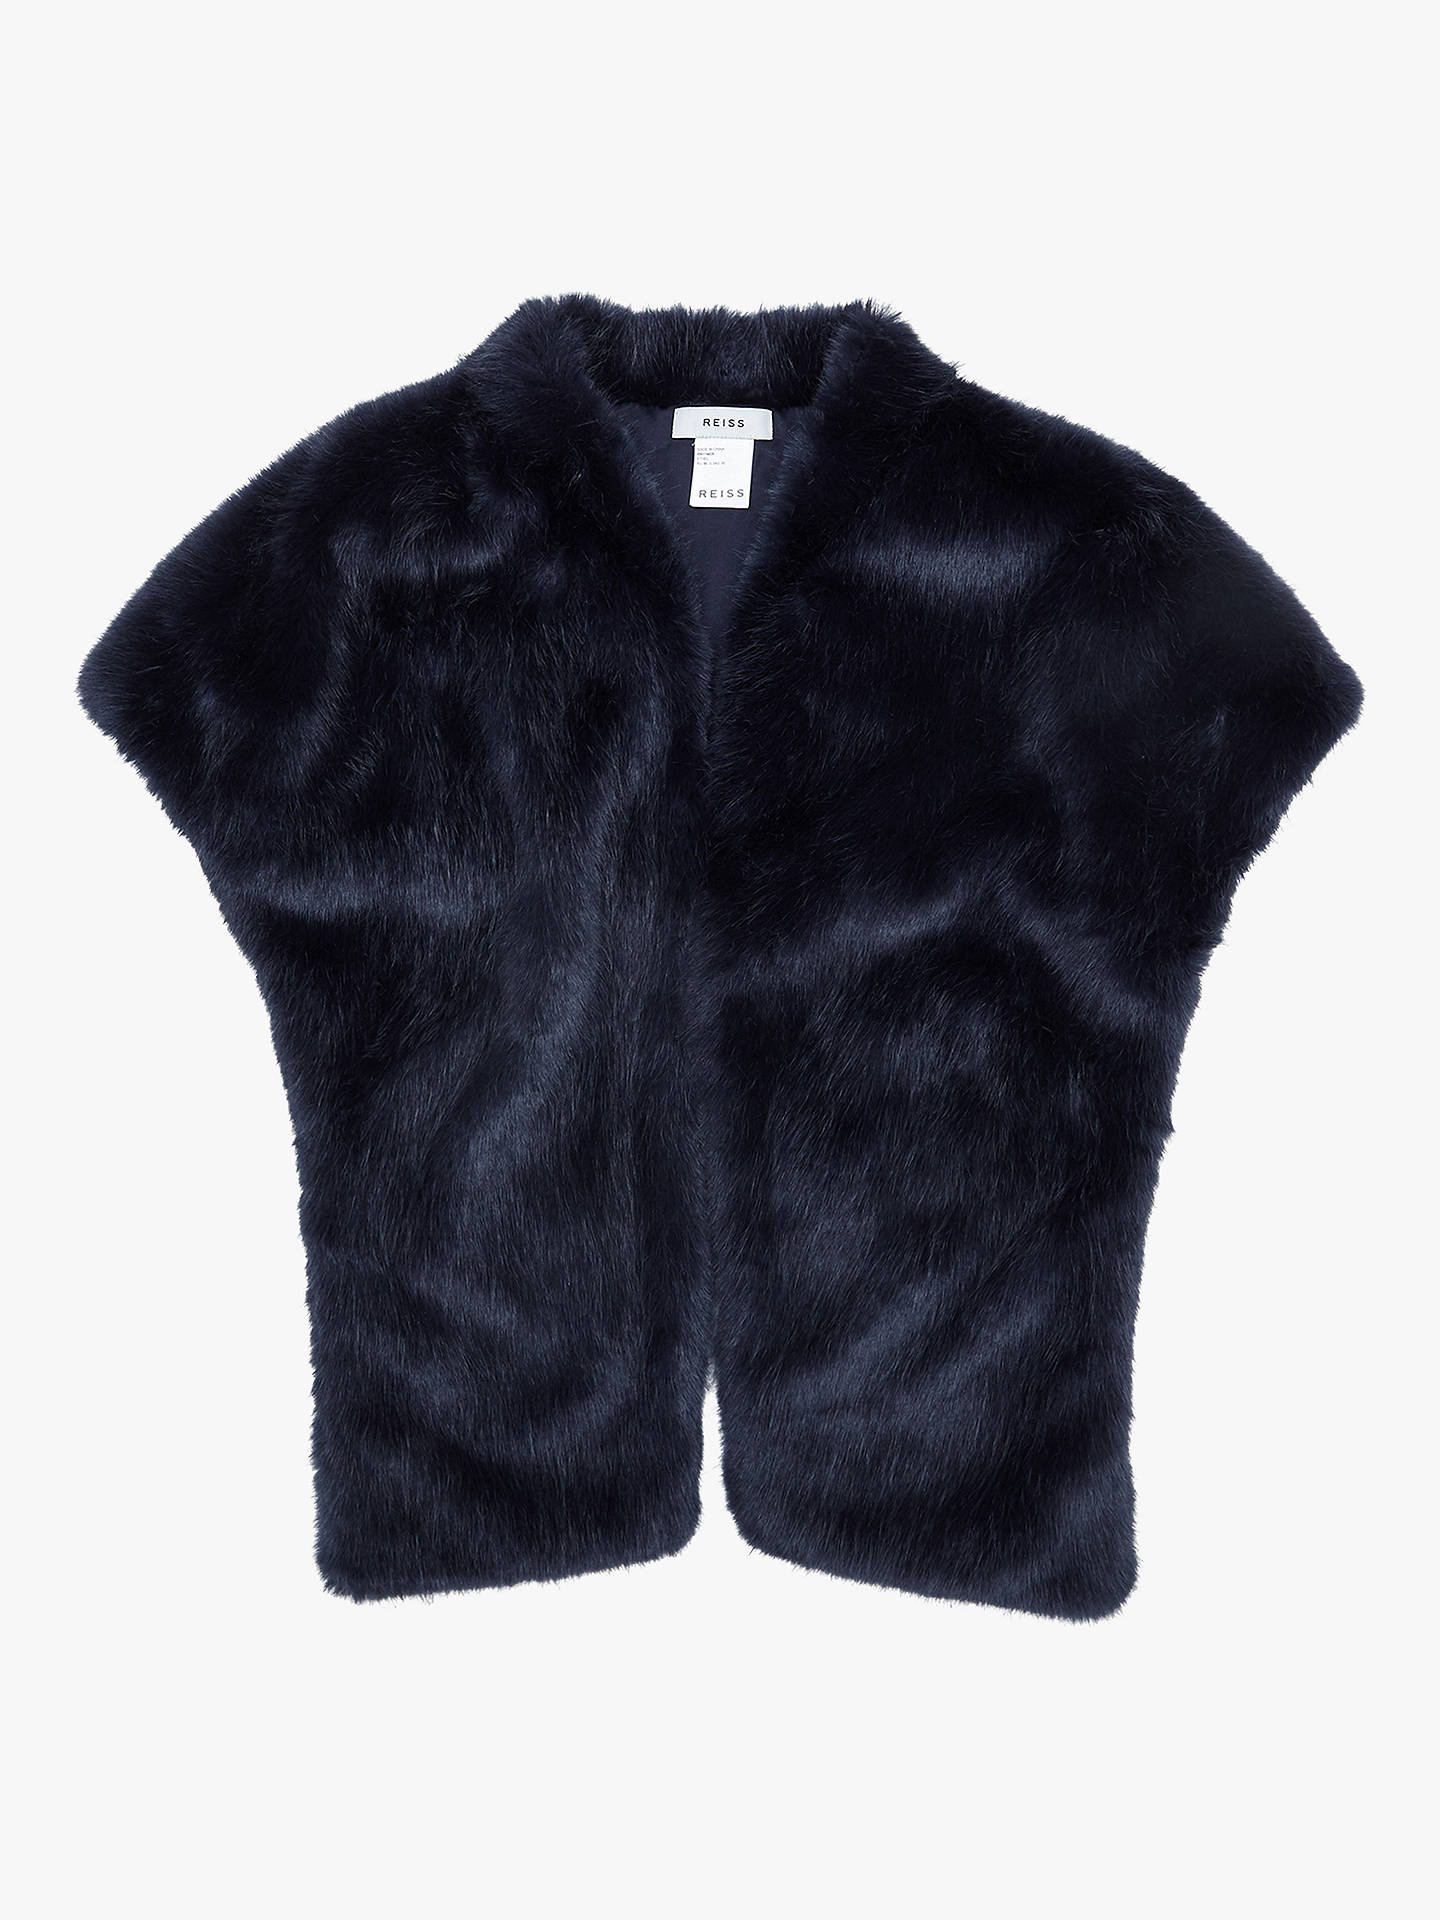 Buy Reiss Ethel Faux Fur Stole, Navy, One Size Online at johnlewis.com